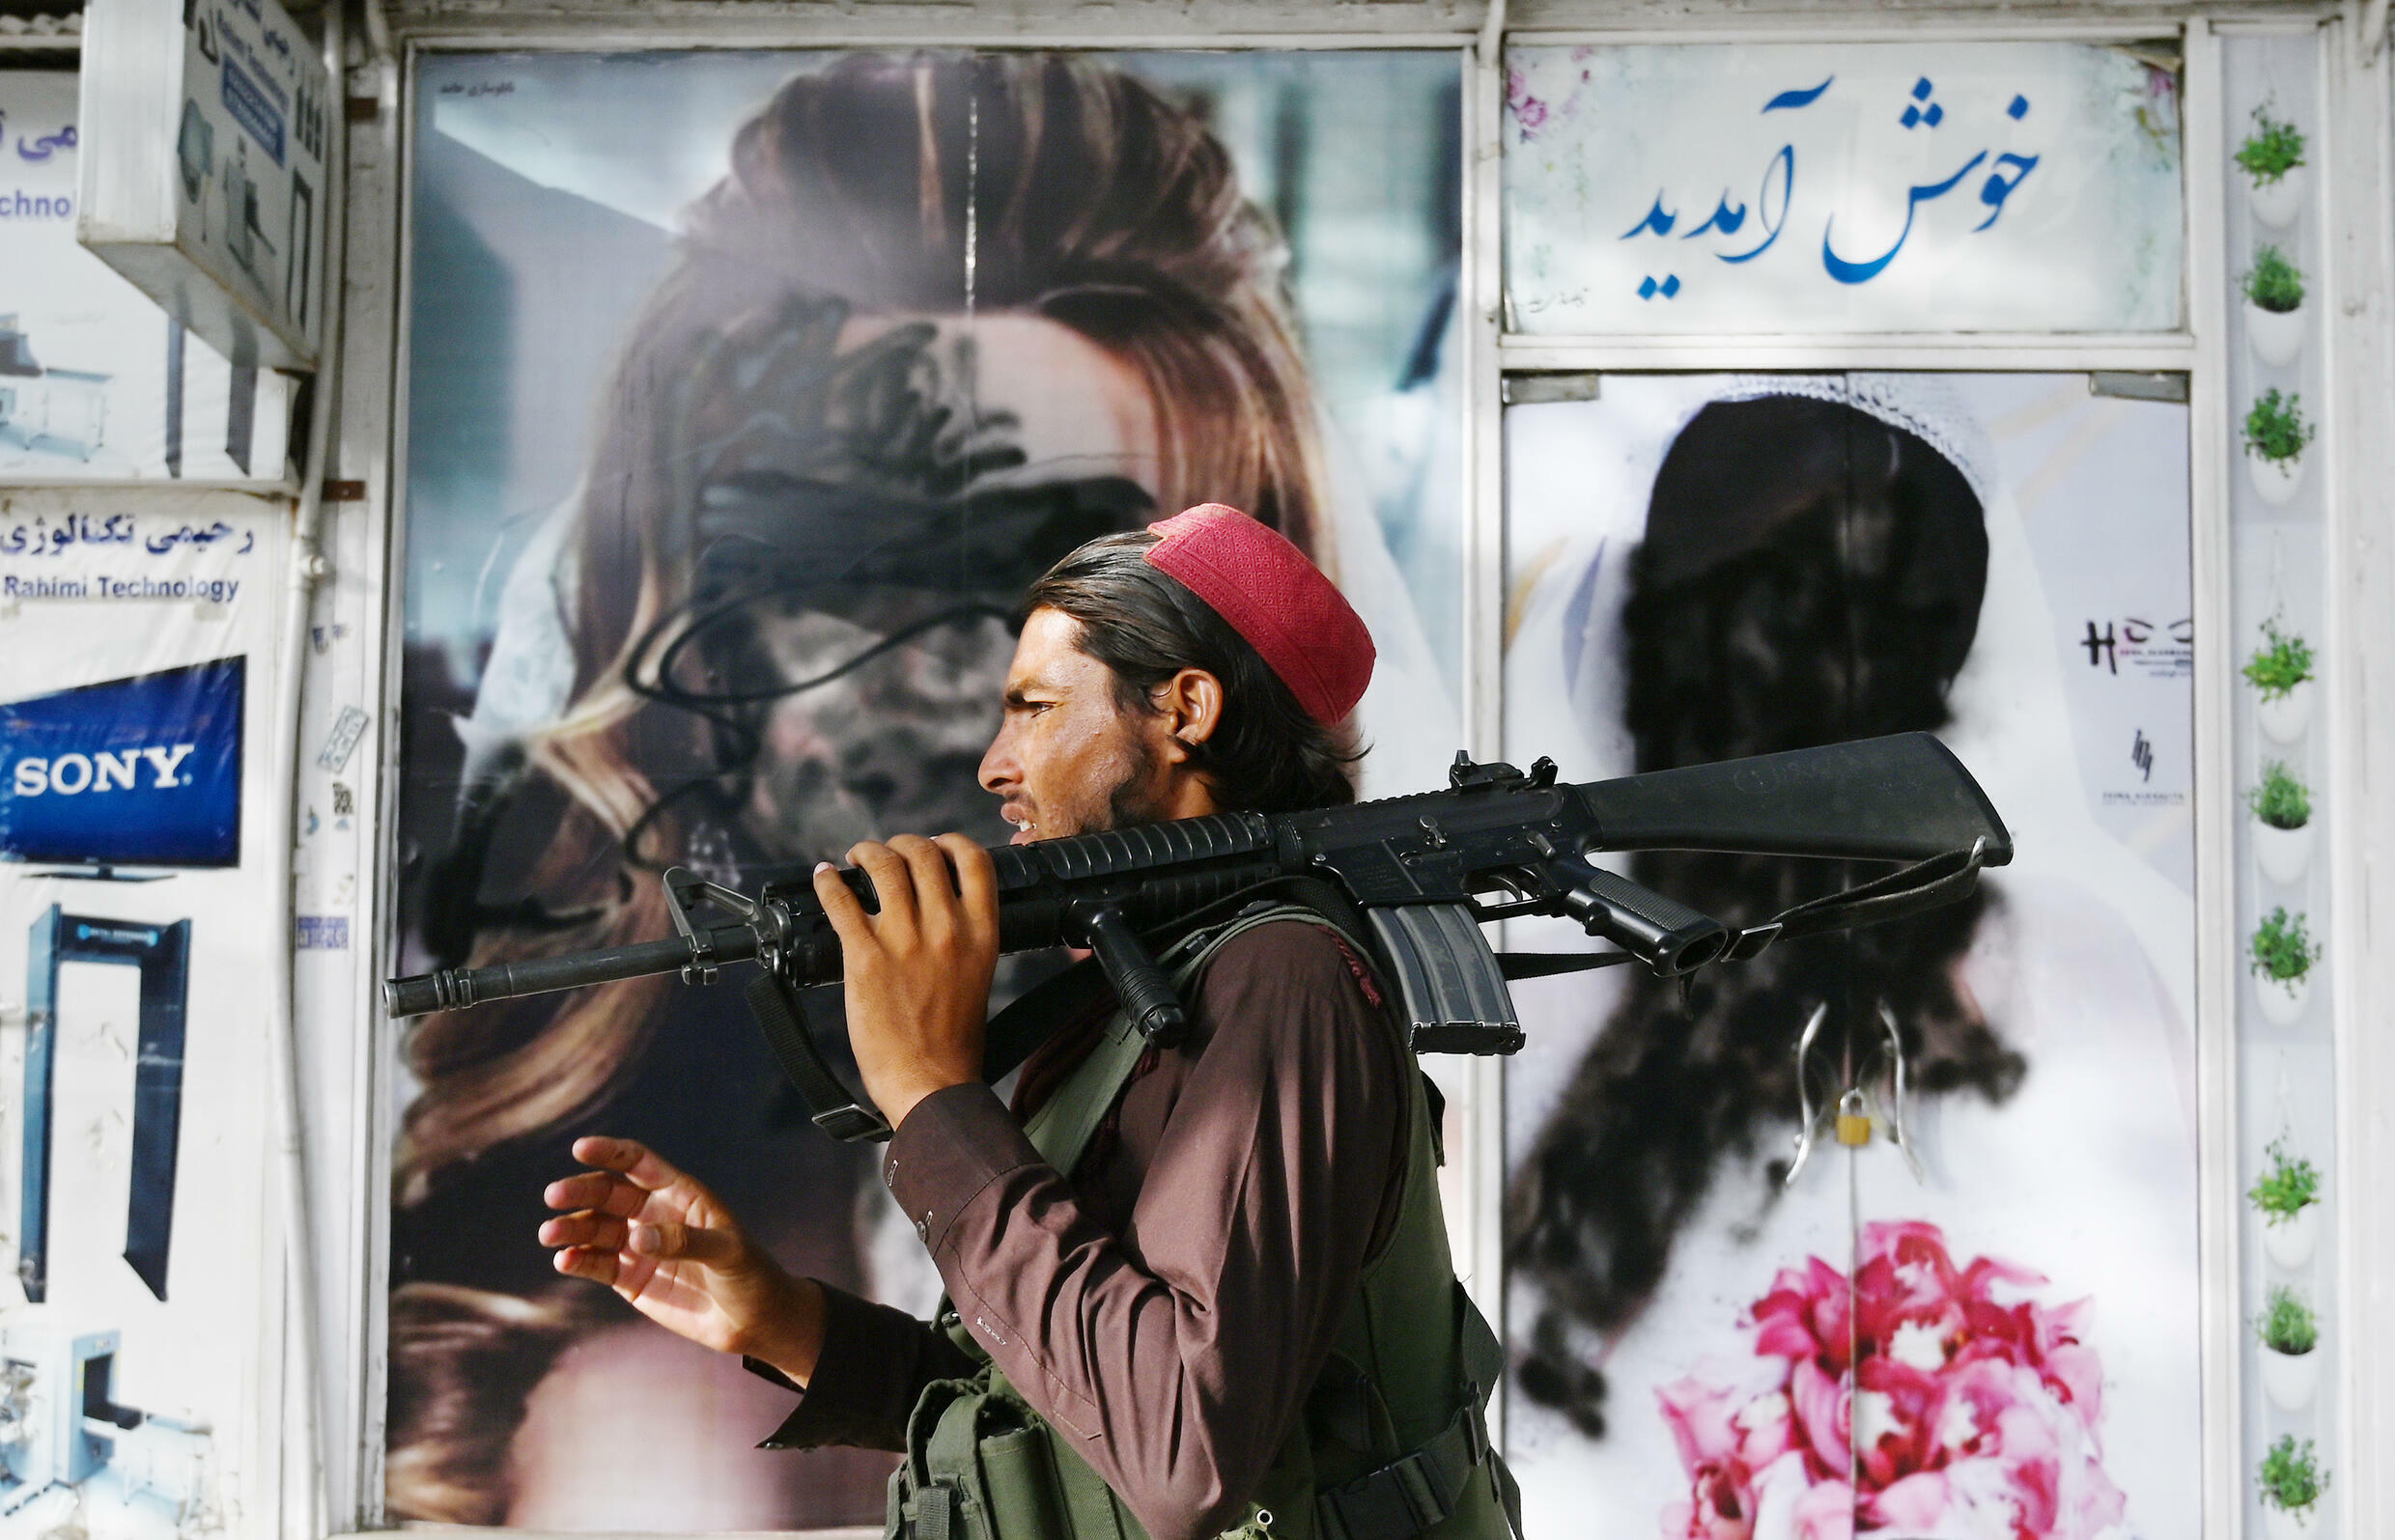 Images of women have been covered up or vandalised on storefronts around Kabul